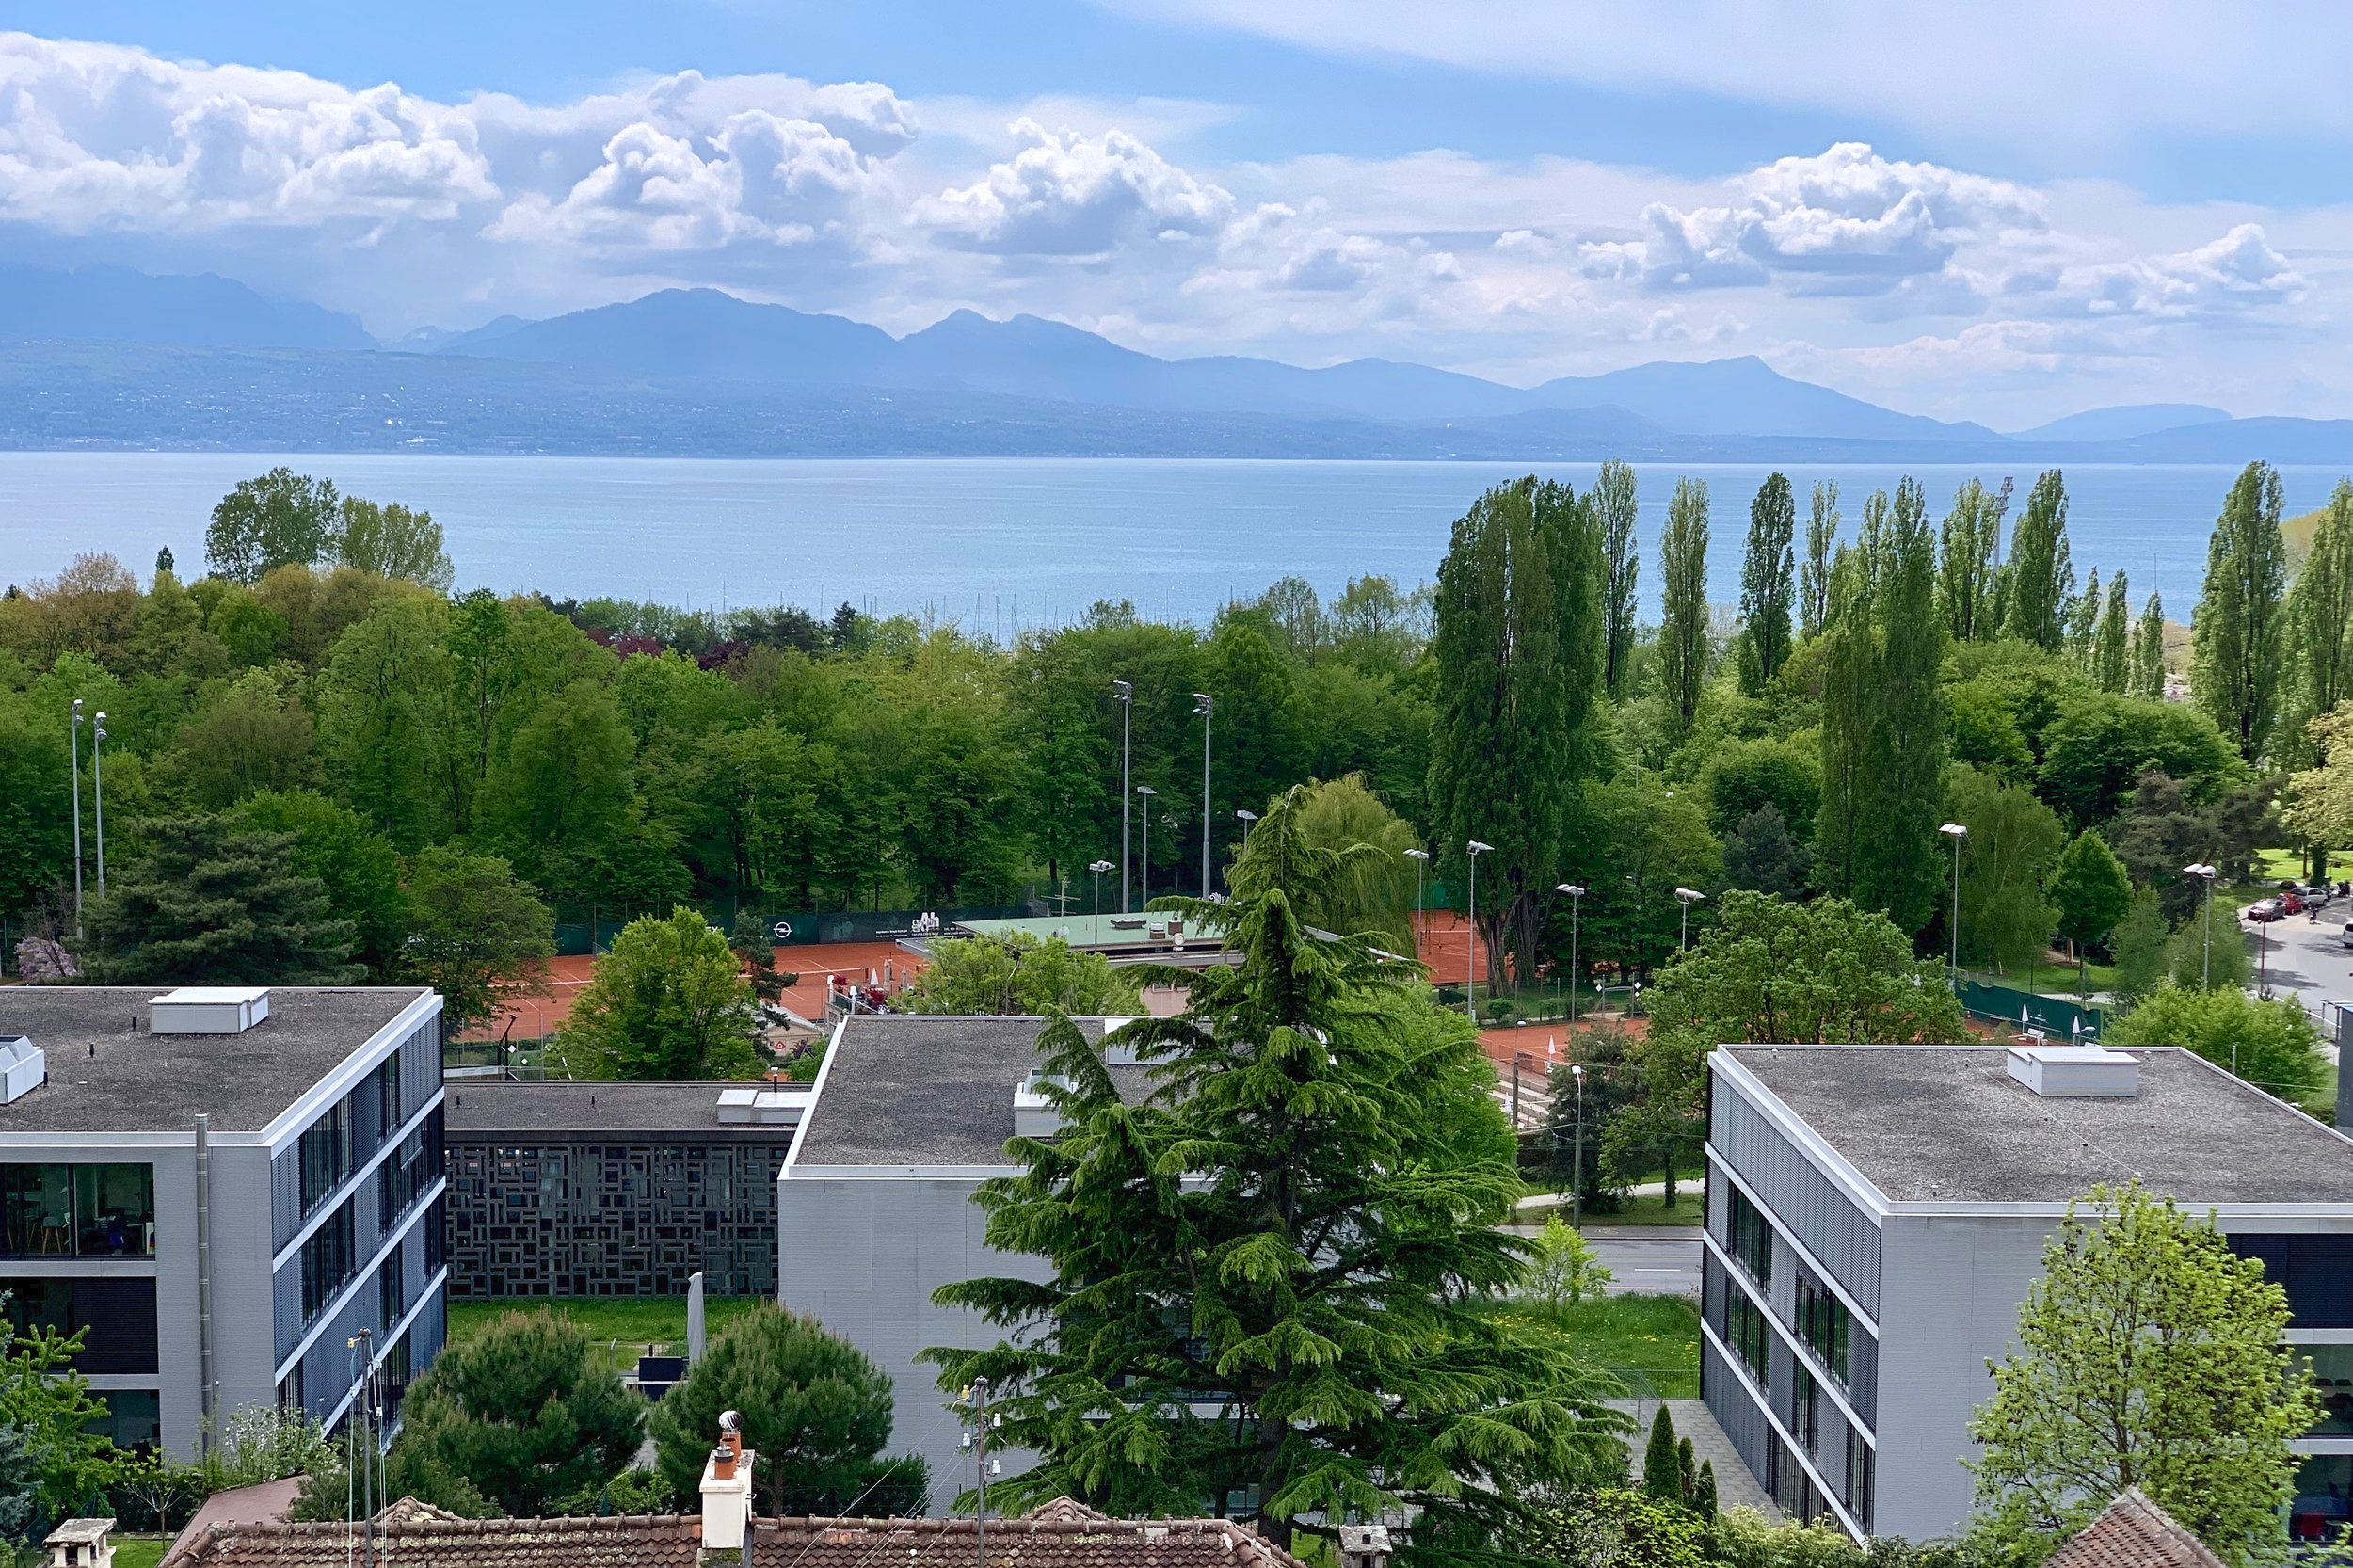 Clay-court tennis, as viewed from my terrace, as I wrote this post. Lausanne, Switzerland. May 3, 2019.